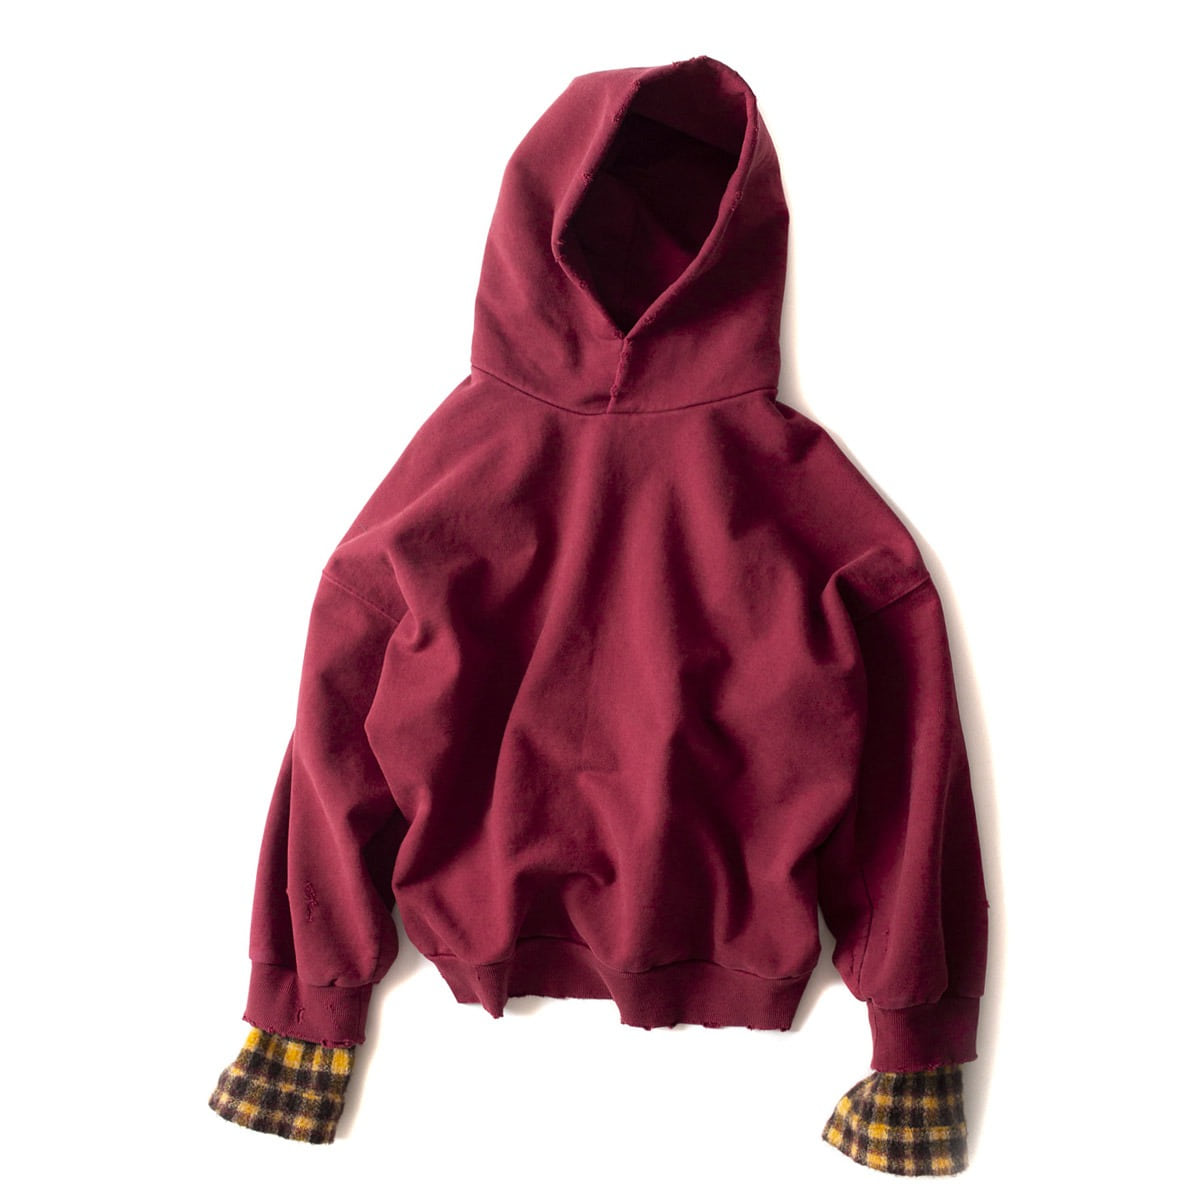 [BIRTHDAYSUIT] WOOL CHECK OVERSIZED HOODY 'BURGUNDY'